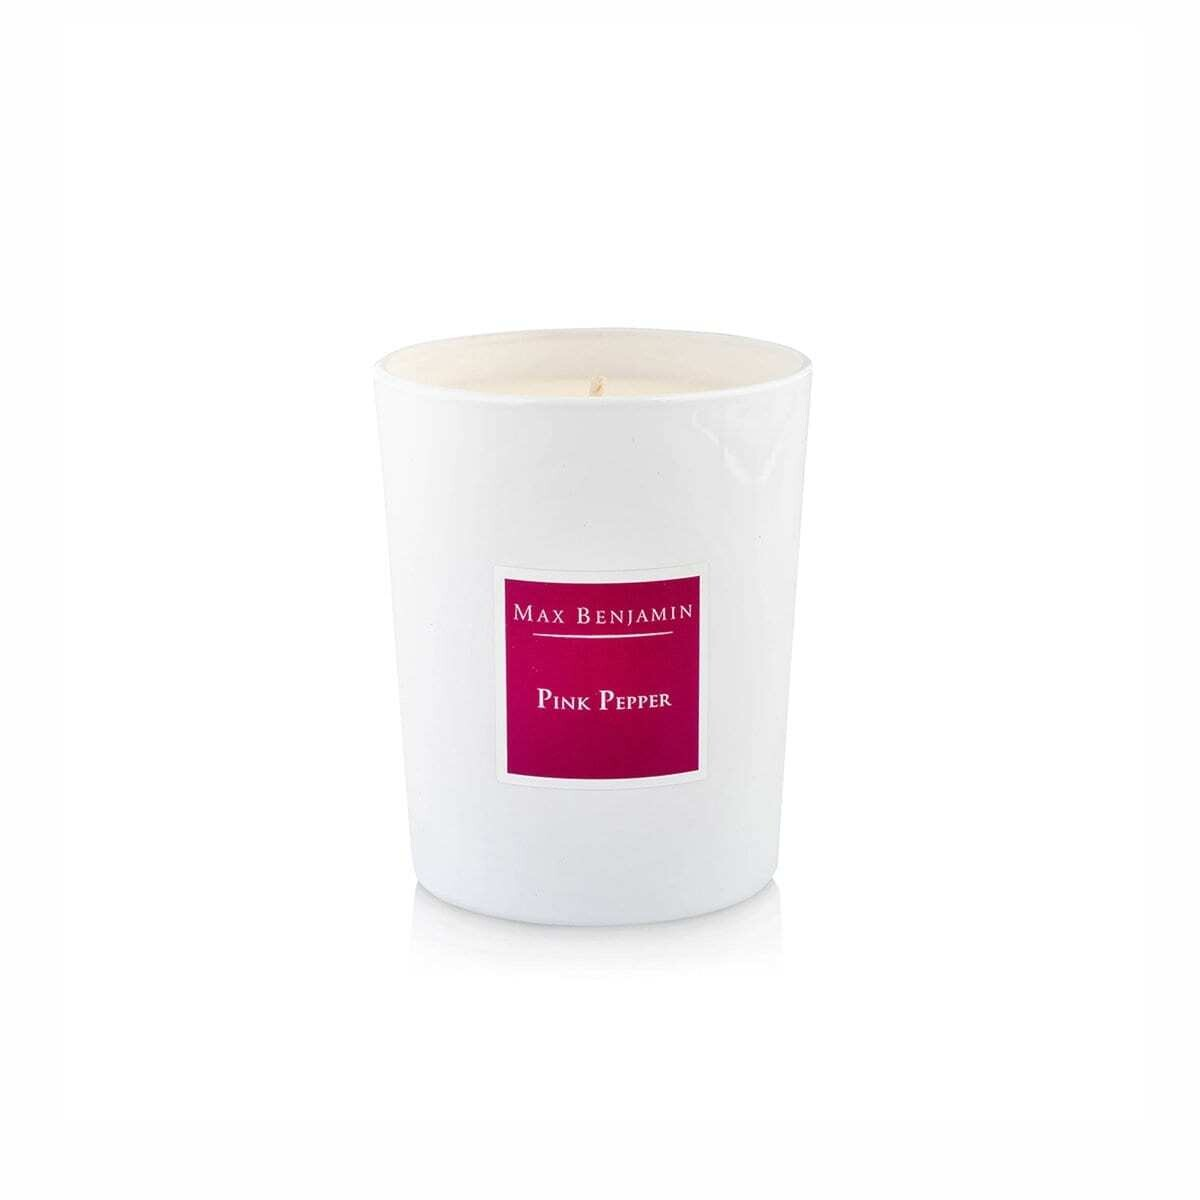 Pink Pepper - Natural Wax Candle